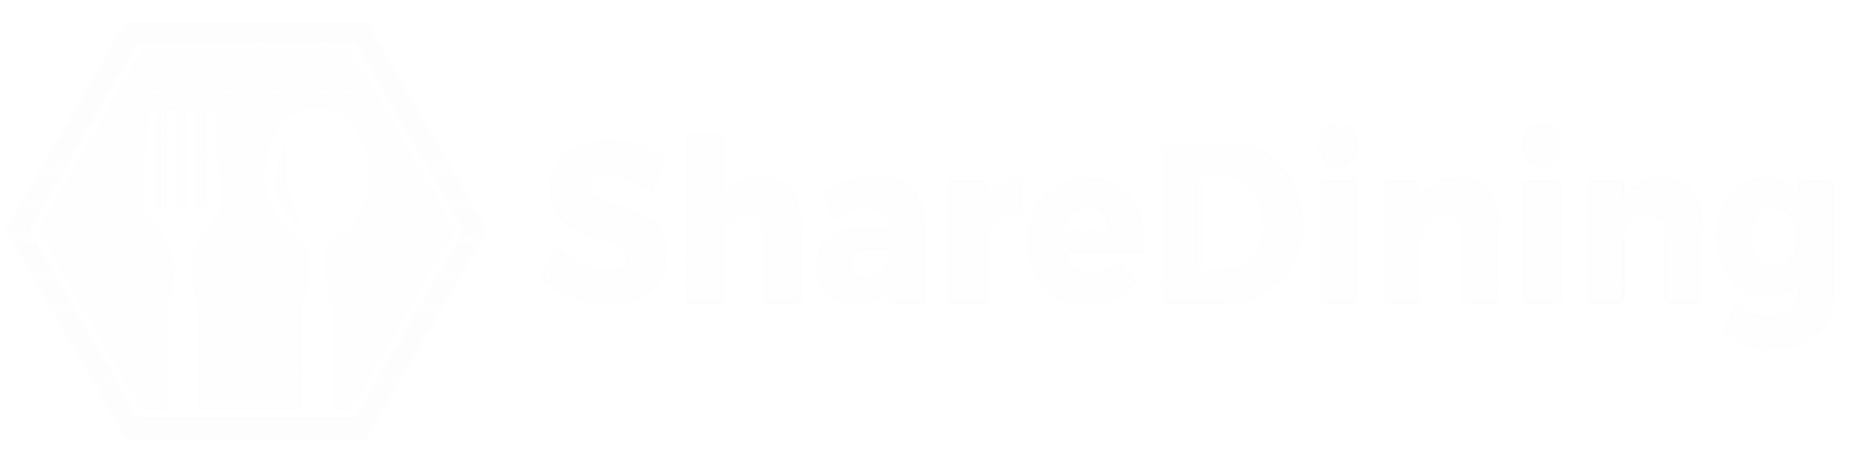 ShareDining Horizontal Logo - White